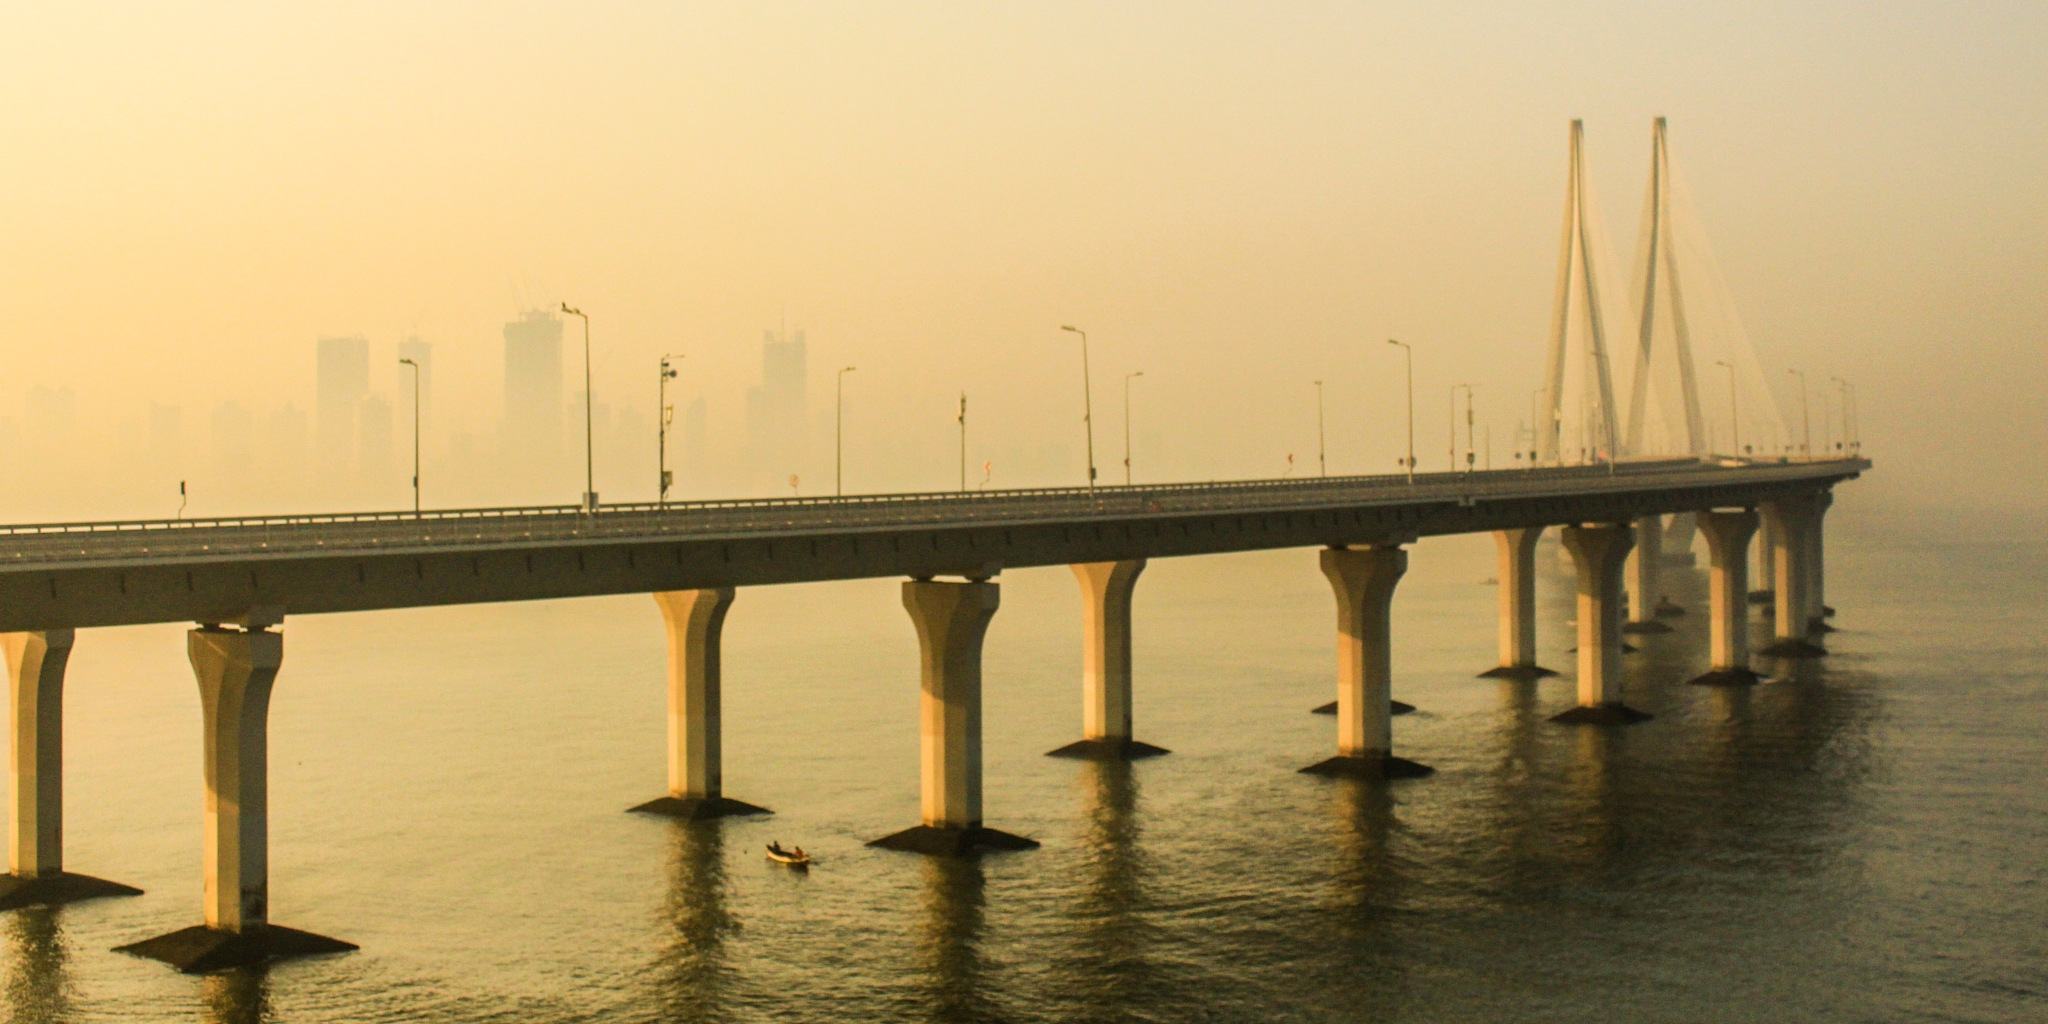 Sea-Link. by sushant Kanchan